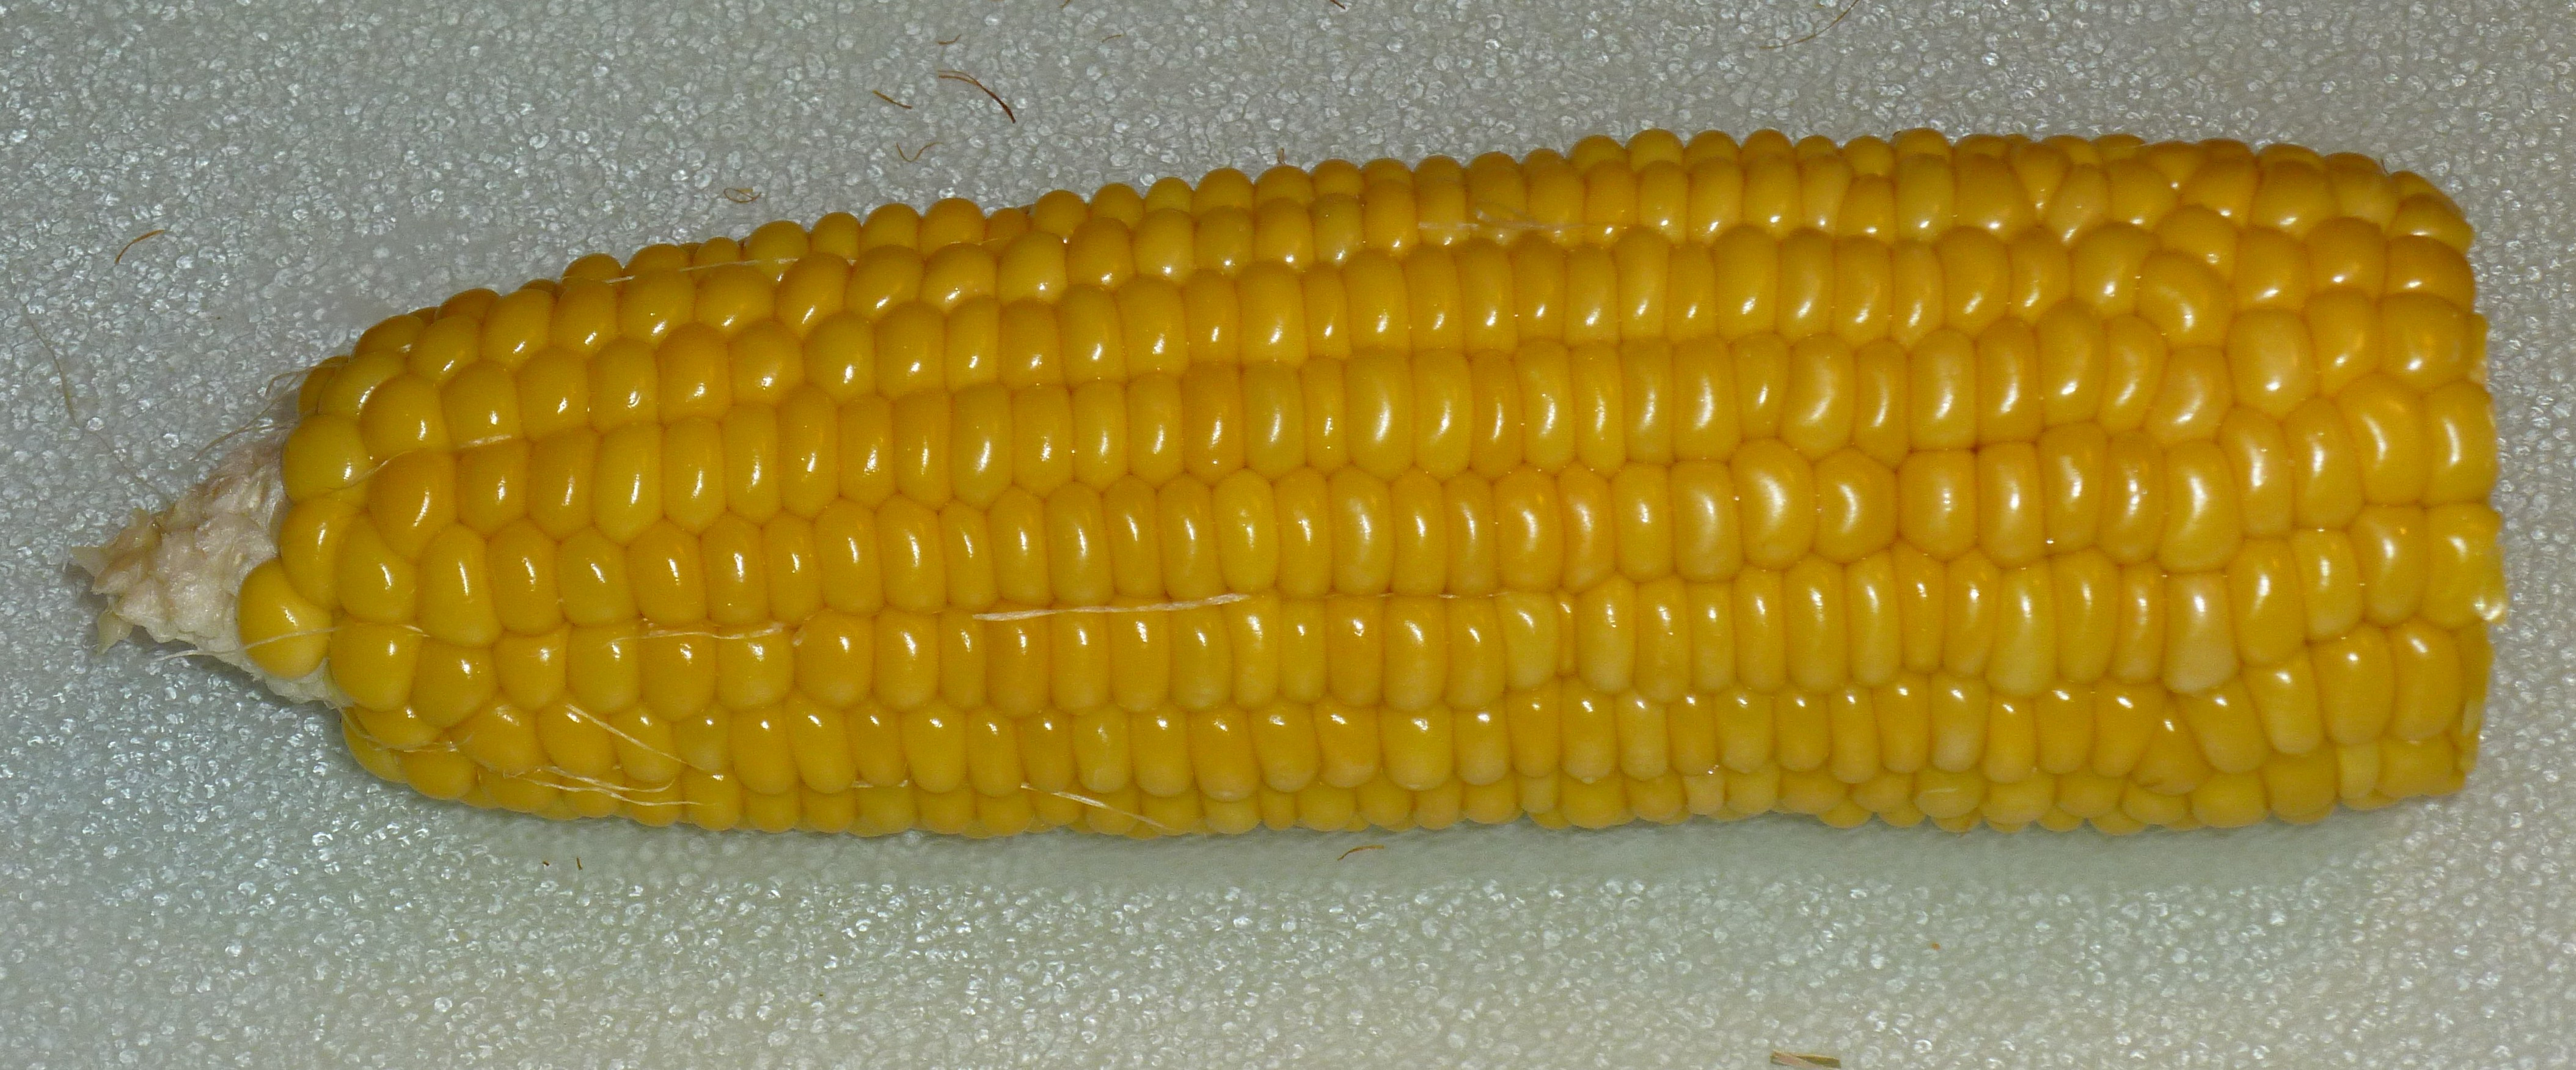 How To Cook Corn On The Cob | PkHowto